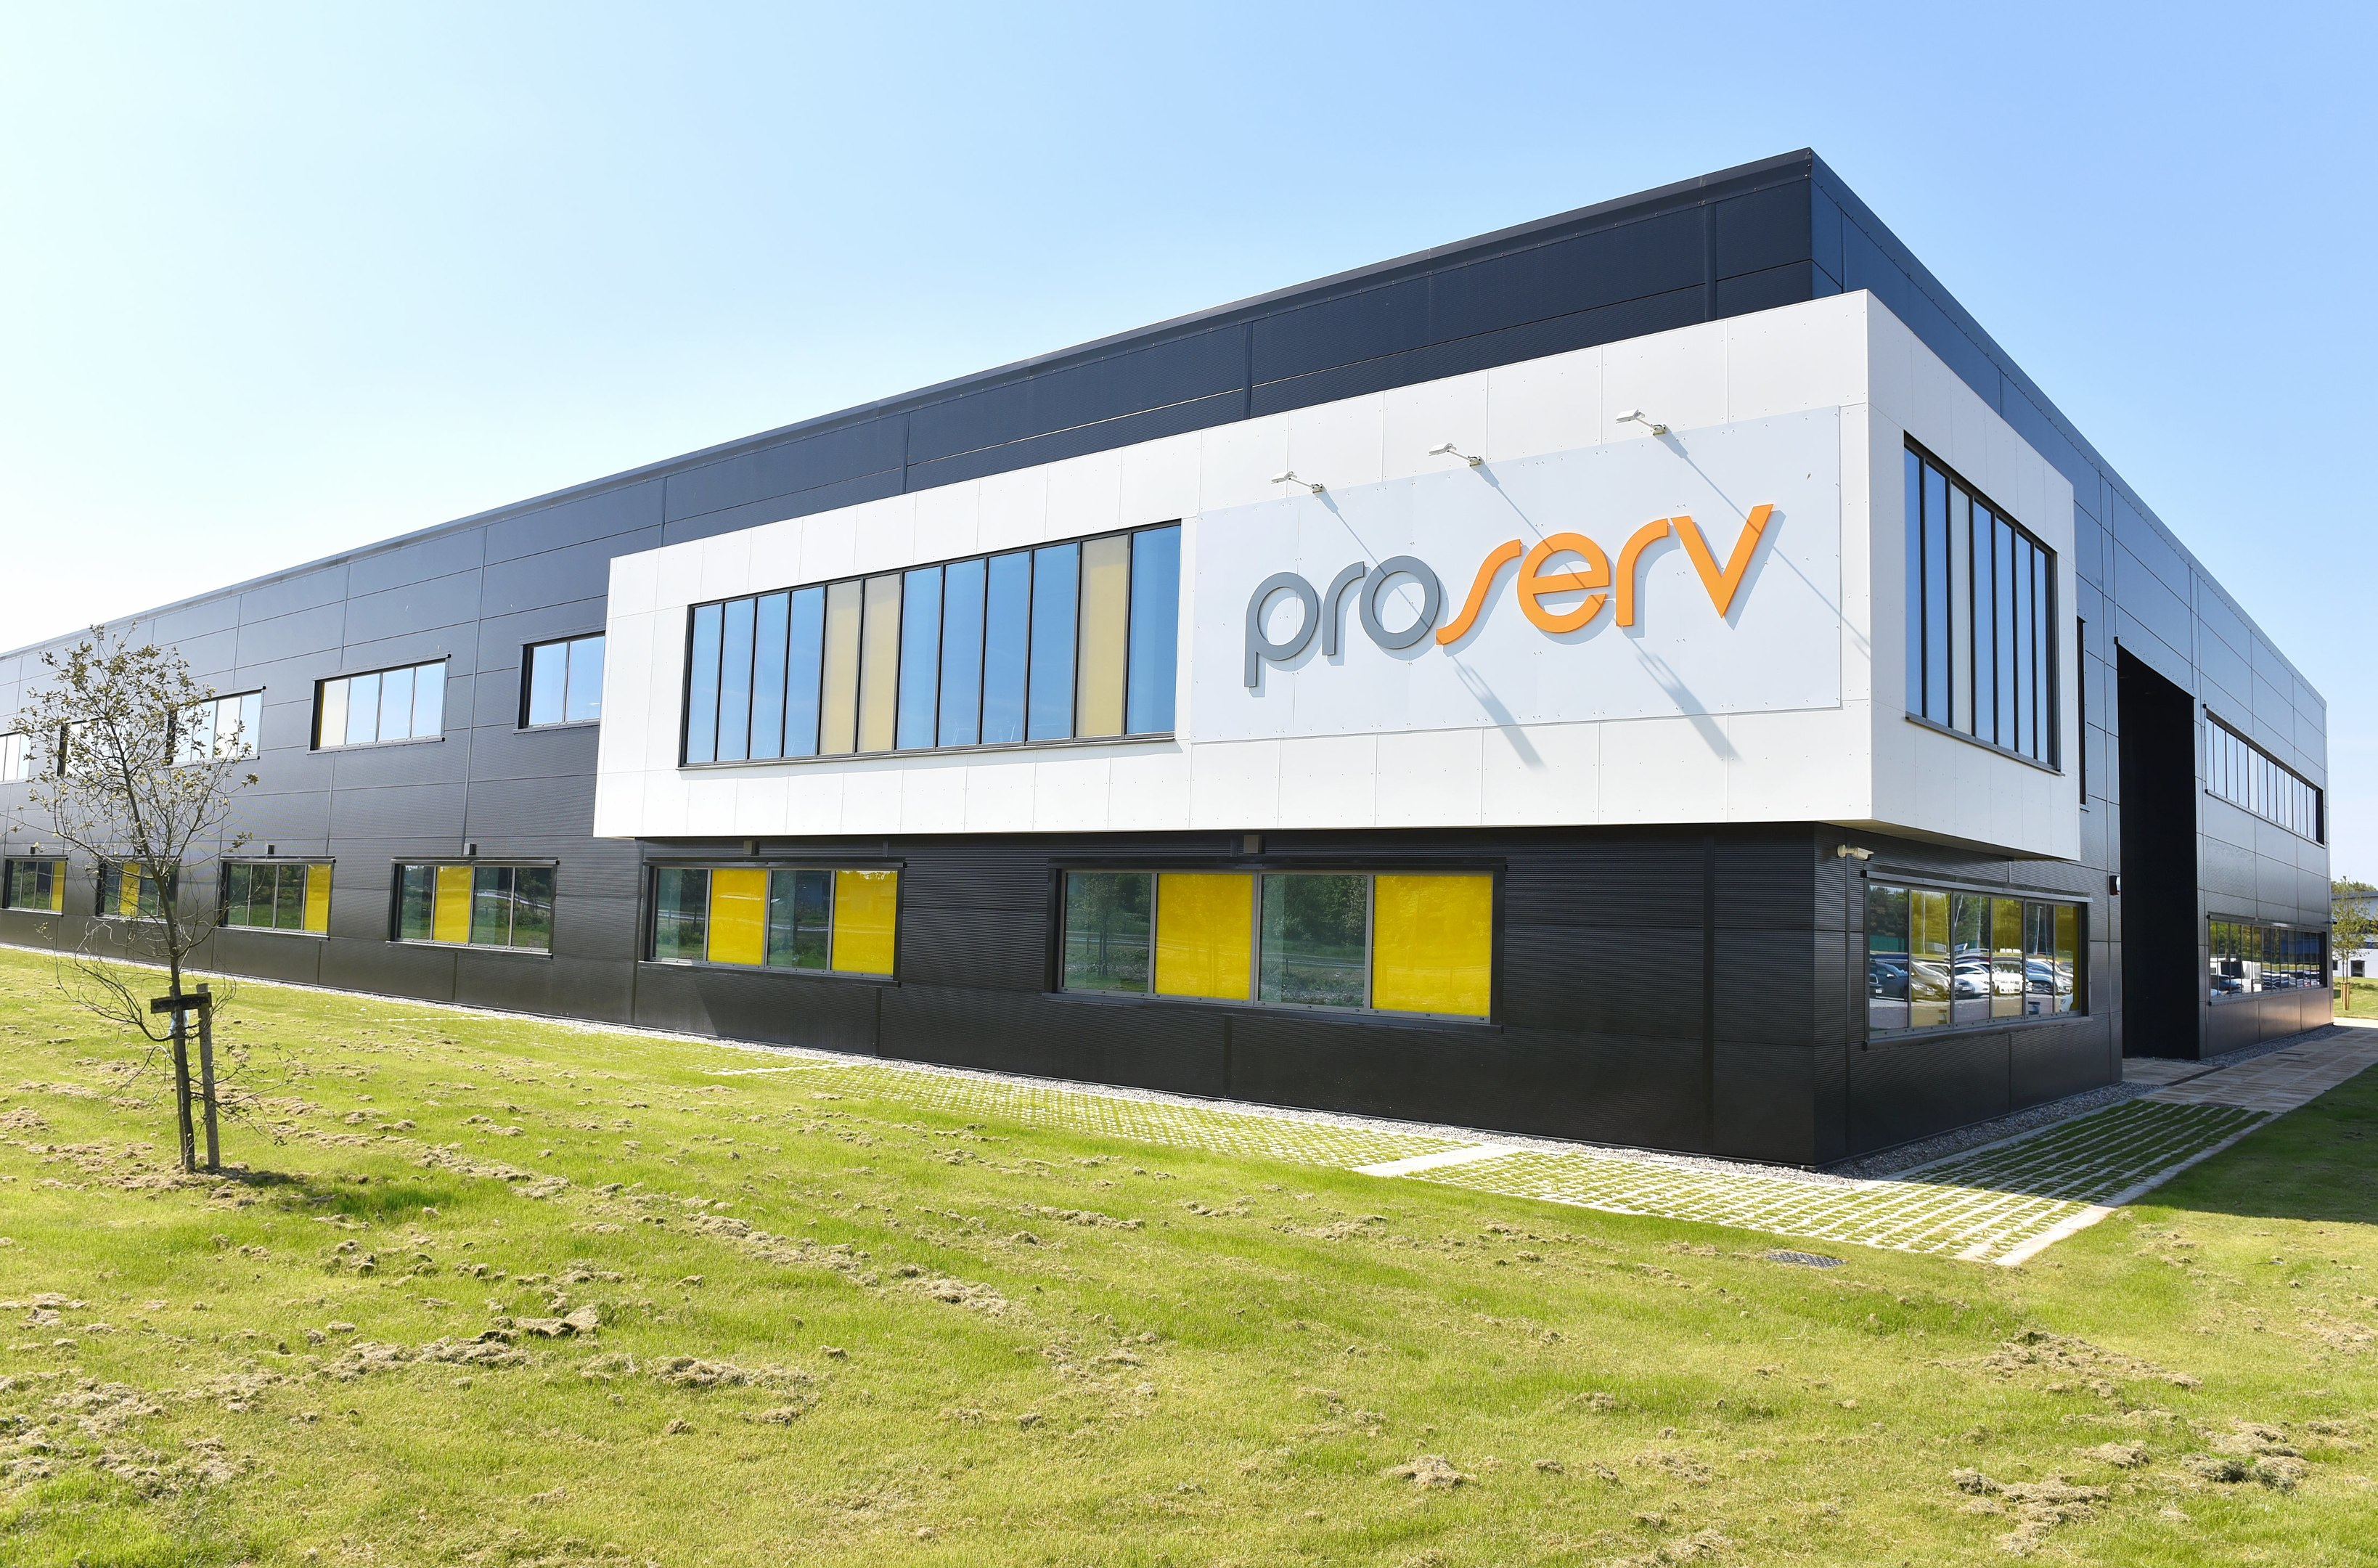 Official opening of the new Proserv Centre of Excellence called Artemis House on Beacon Park, Gorleston.